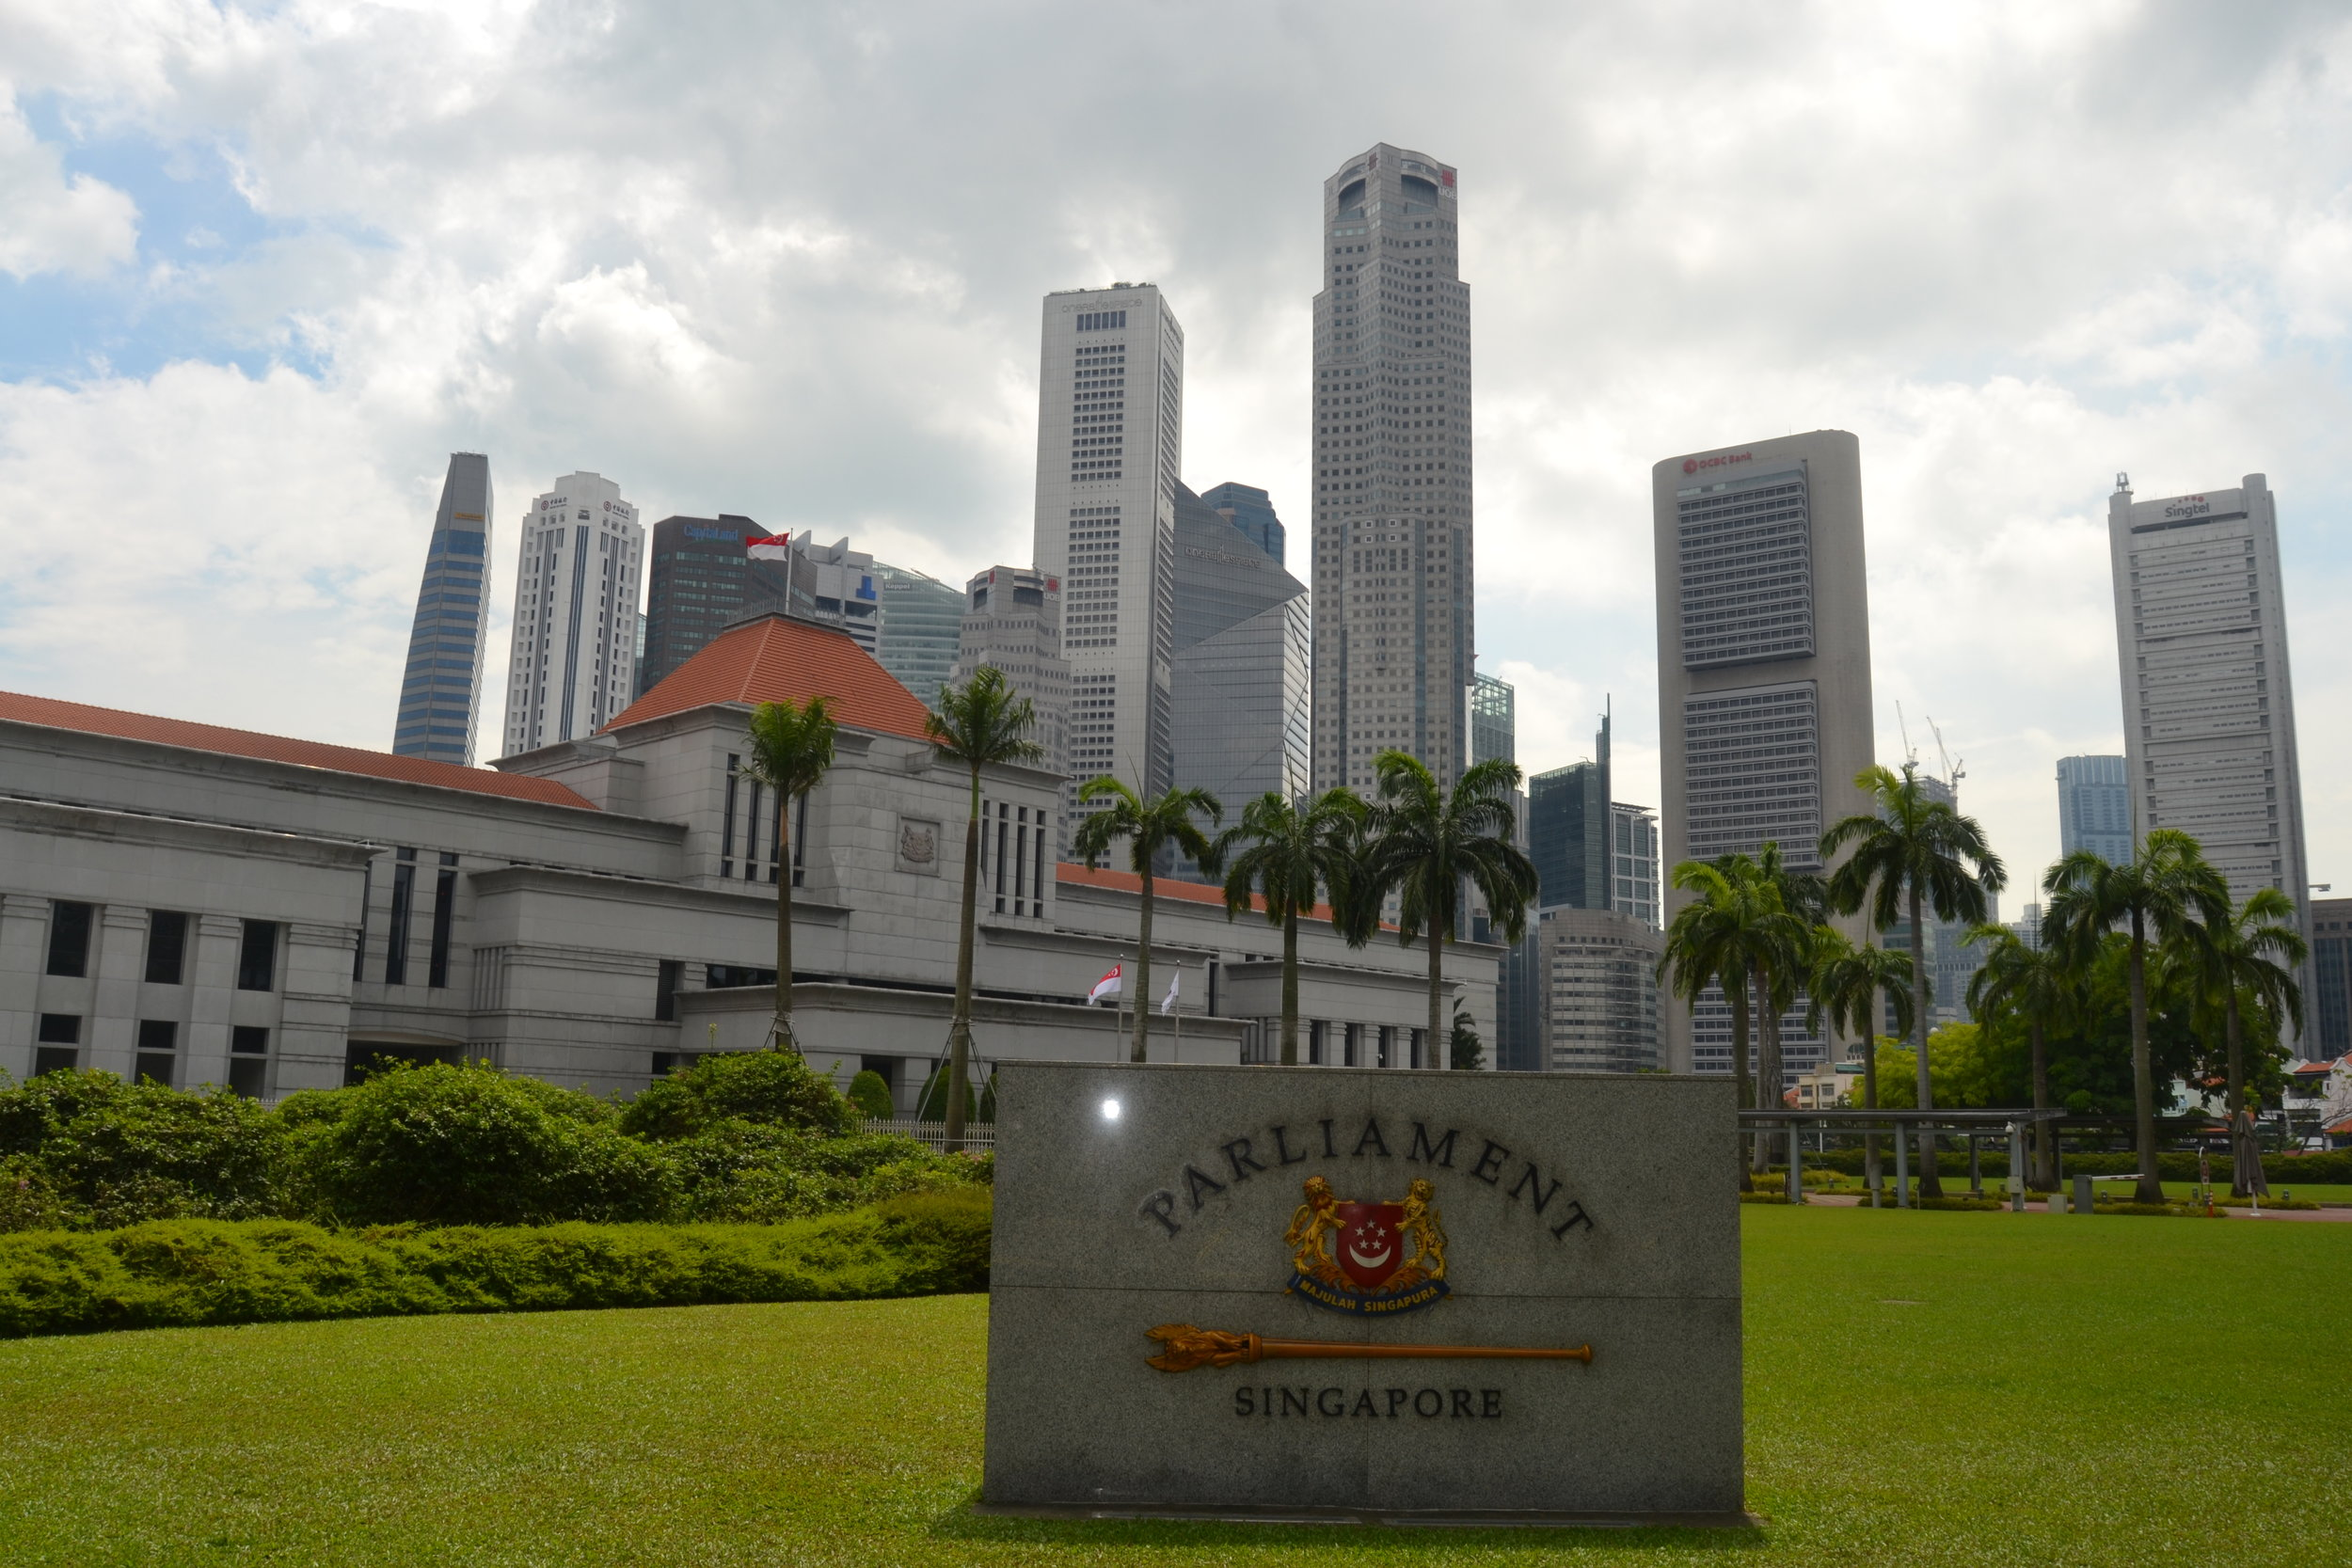 The Parliament of Singapore